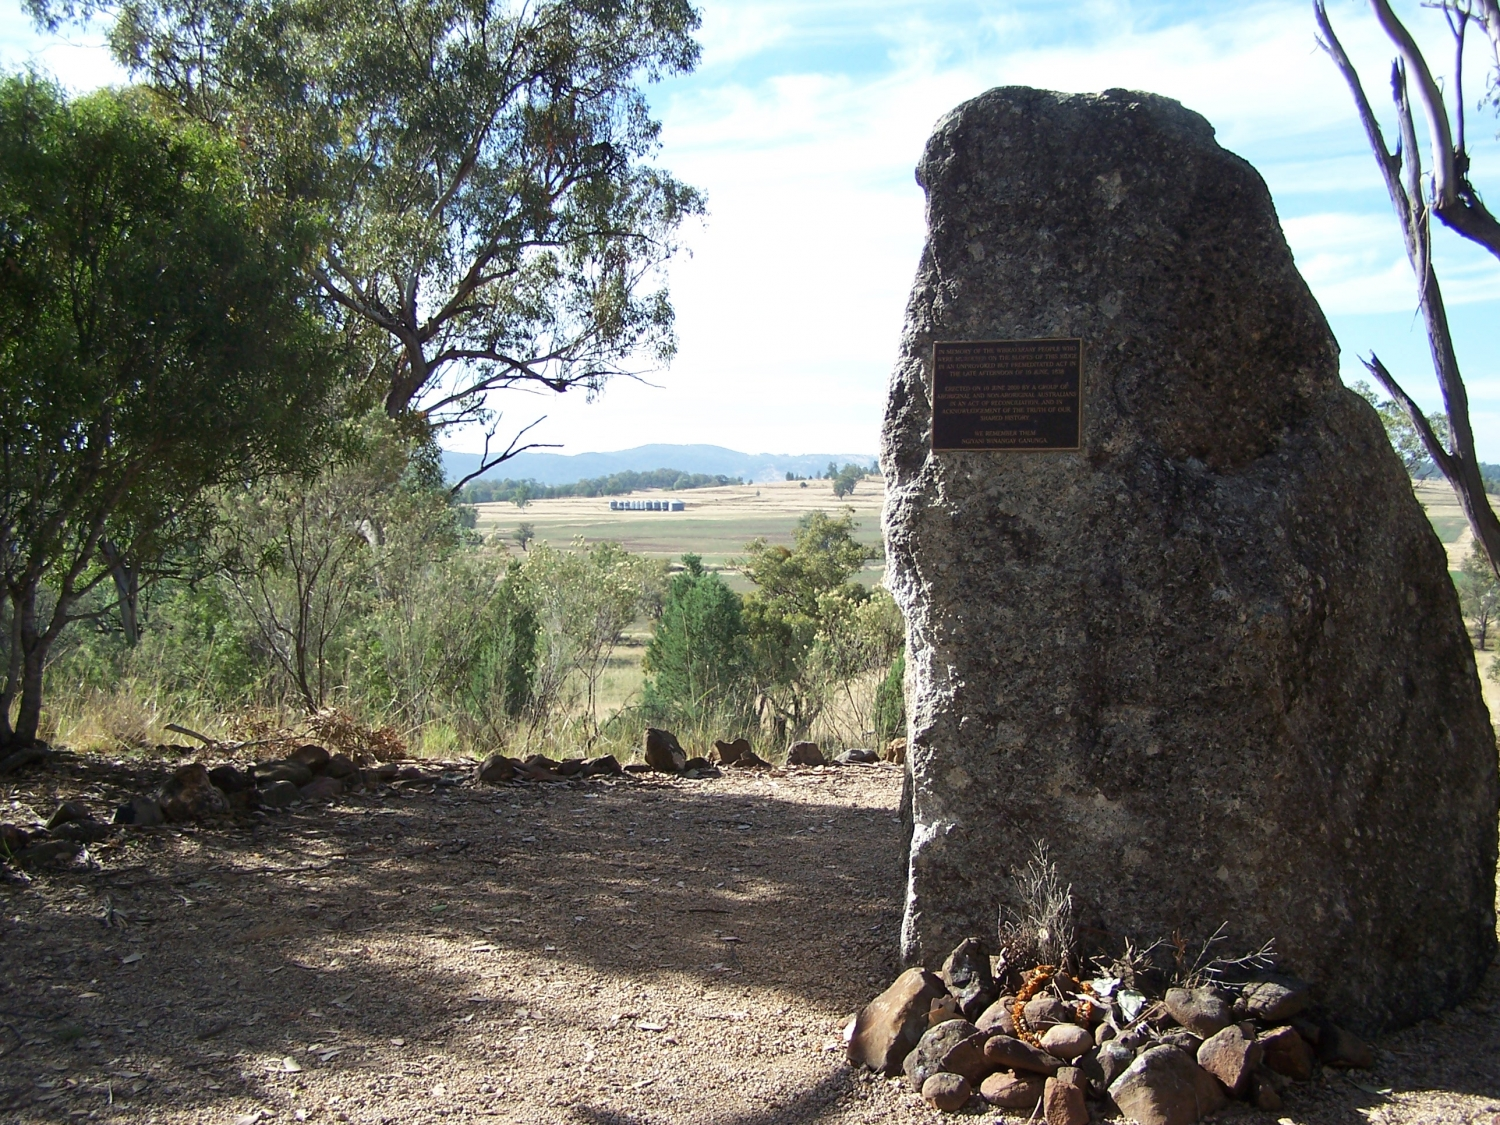 Memorial stone with view of country in background.